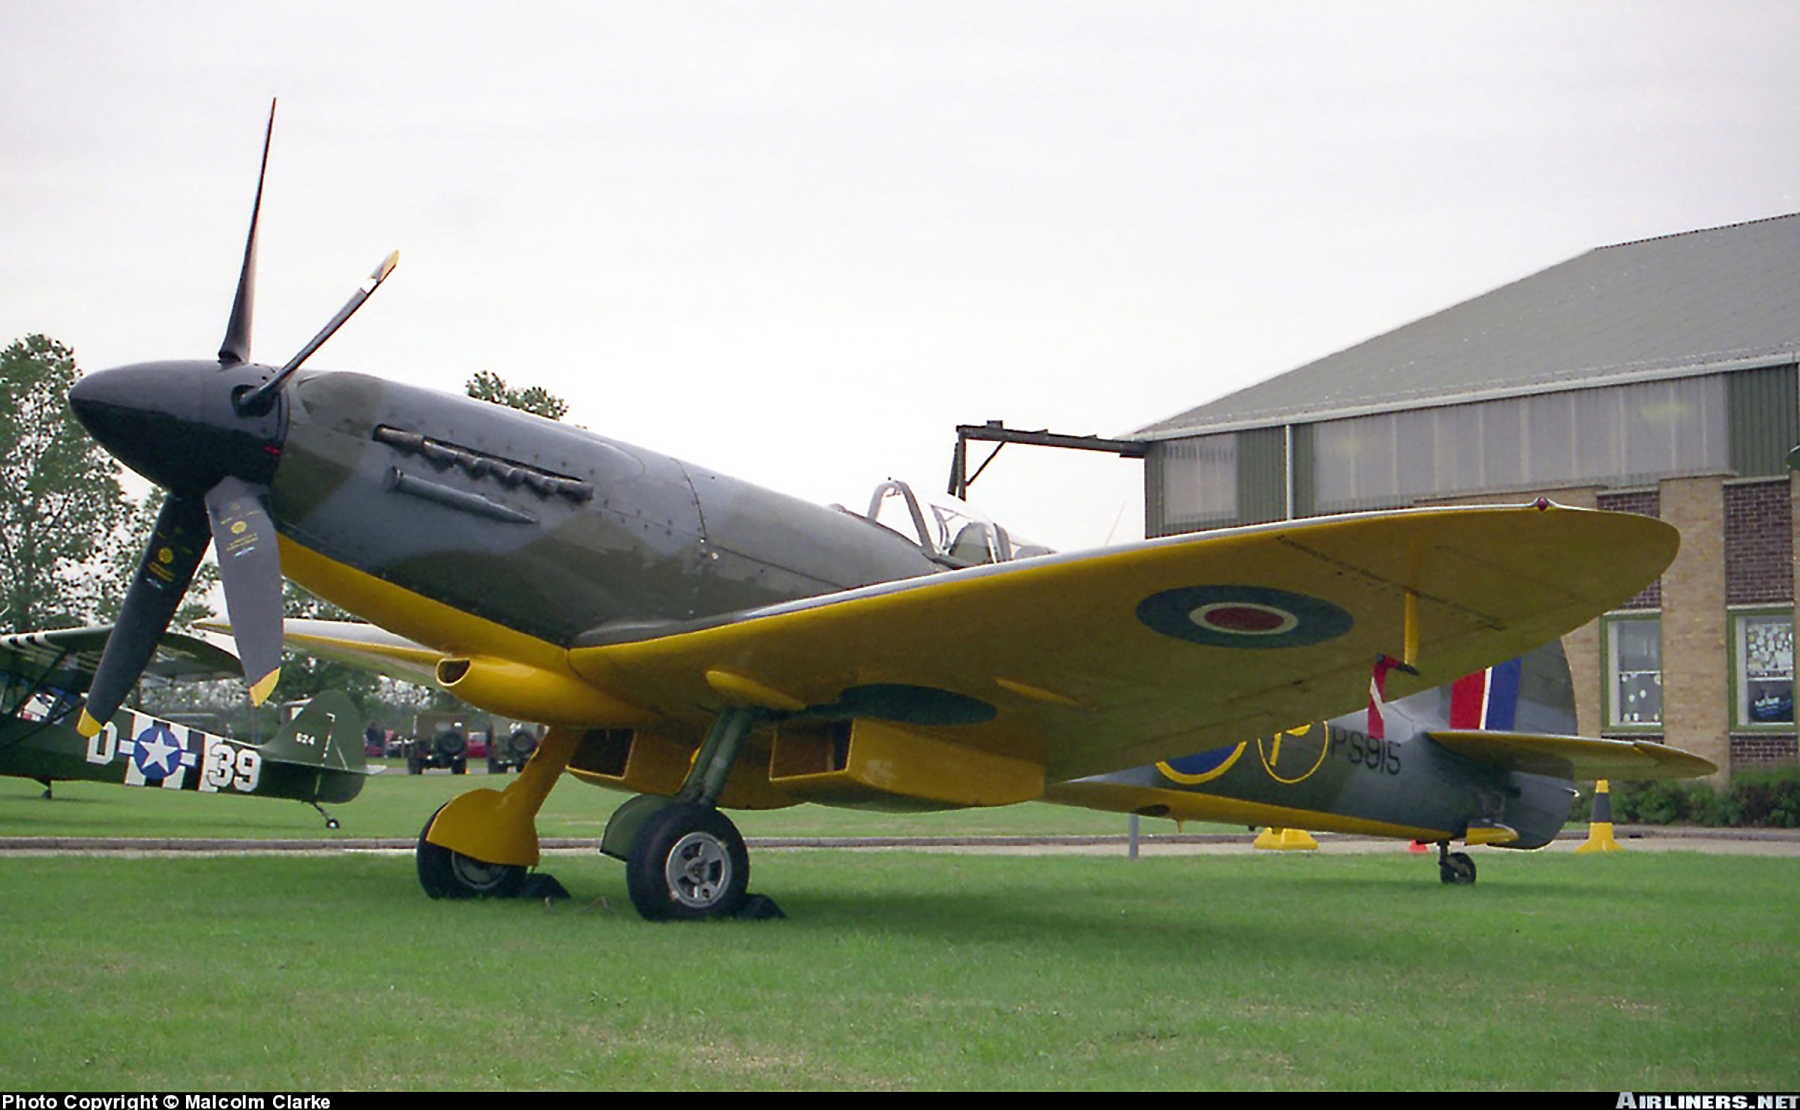 Airworthy Spitfire warbird MkXIVc P Prototype PS915 01